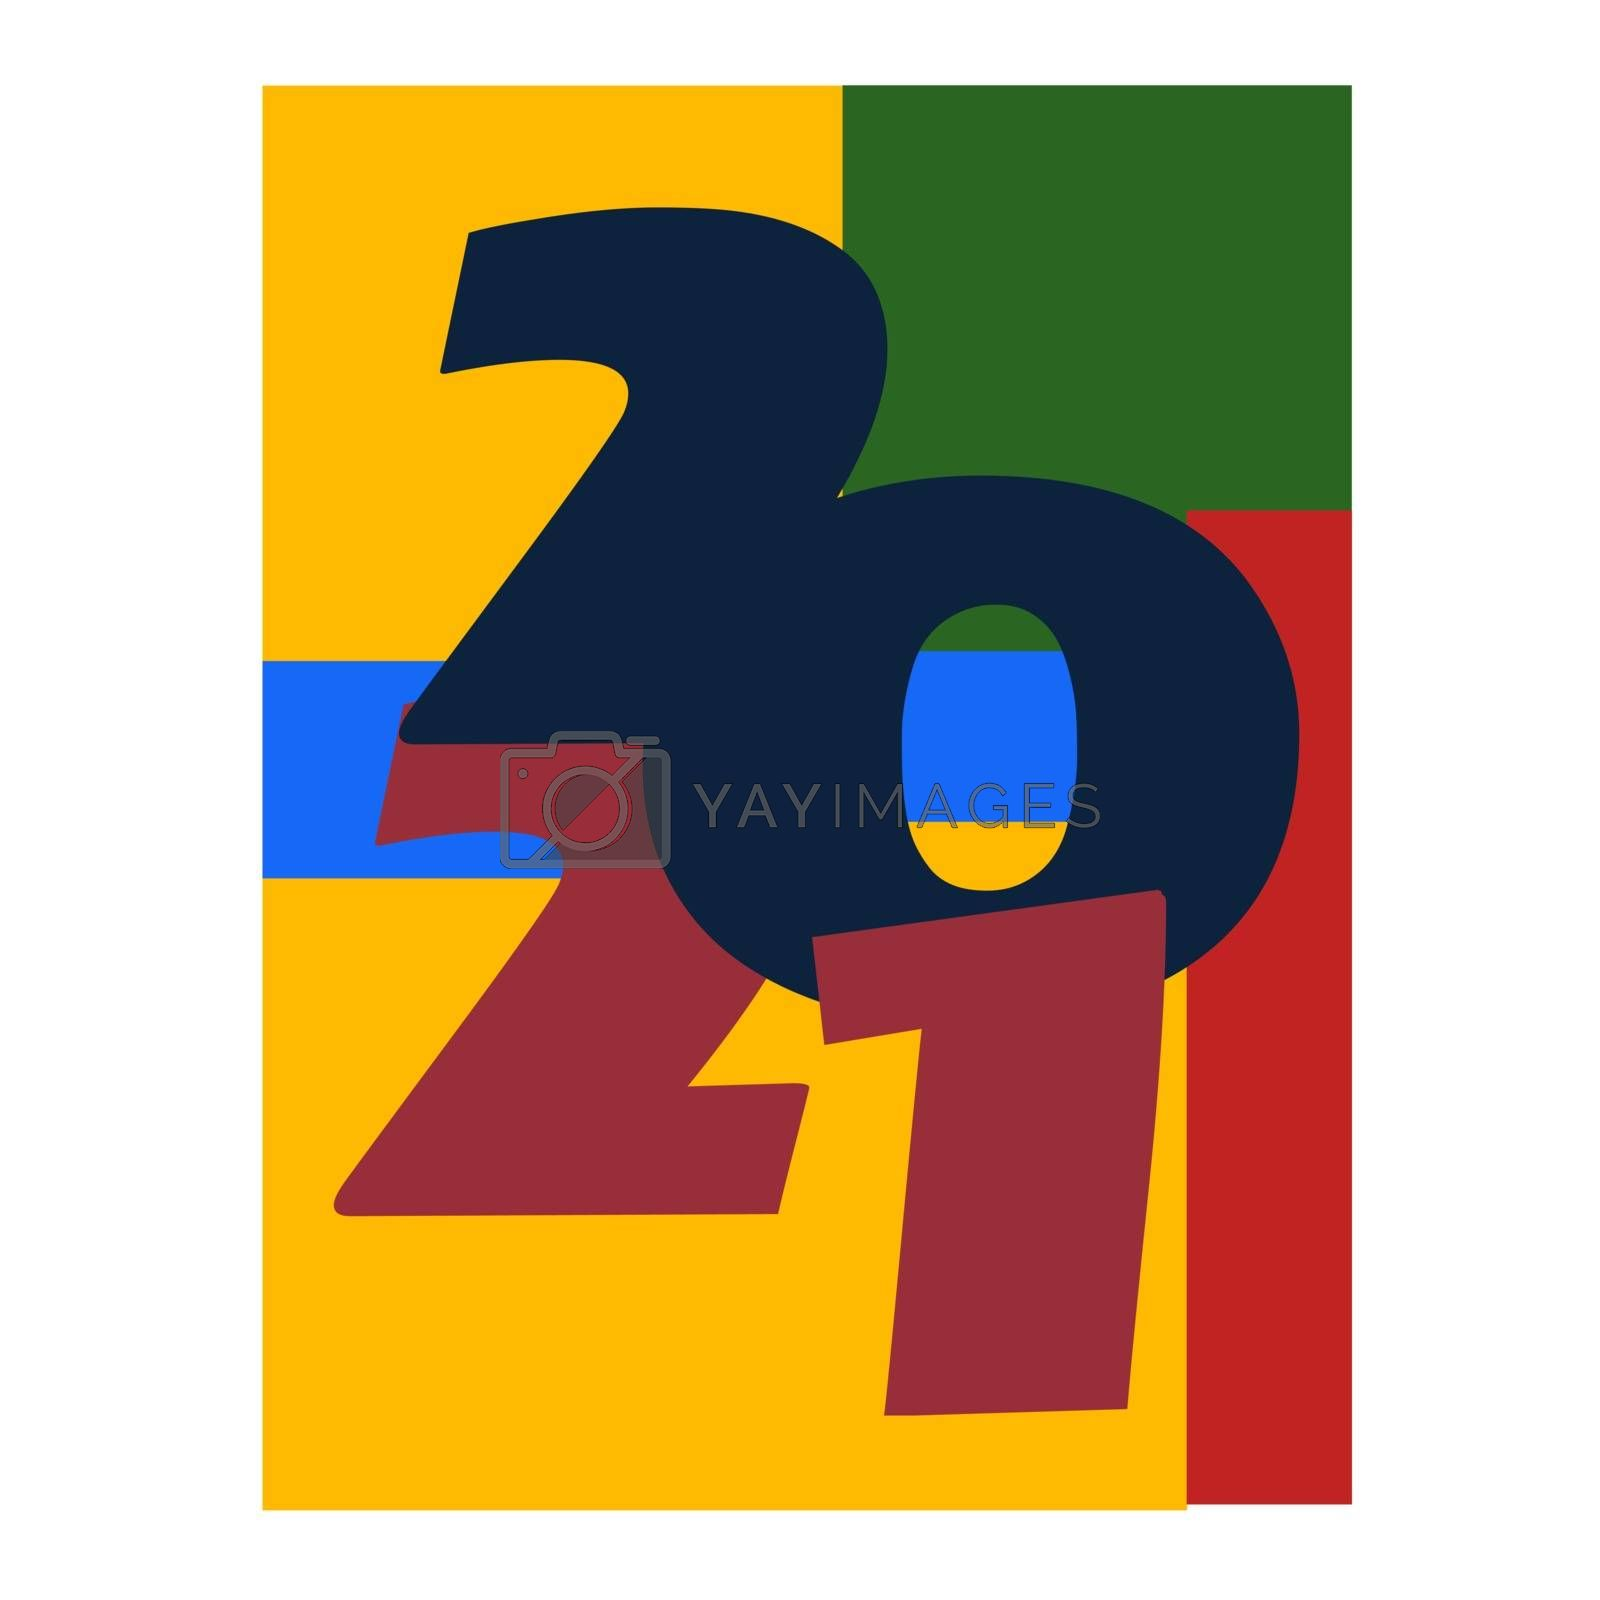 Colored 2021 Happy New Year. Elegant design of colorful 2021 logo numbers. Perfect typography for design and new year celebration invite. Christmas vector illustration. Isolated on white background.